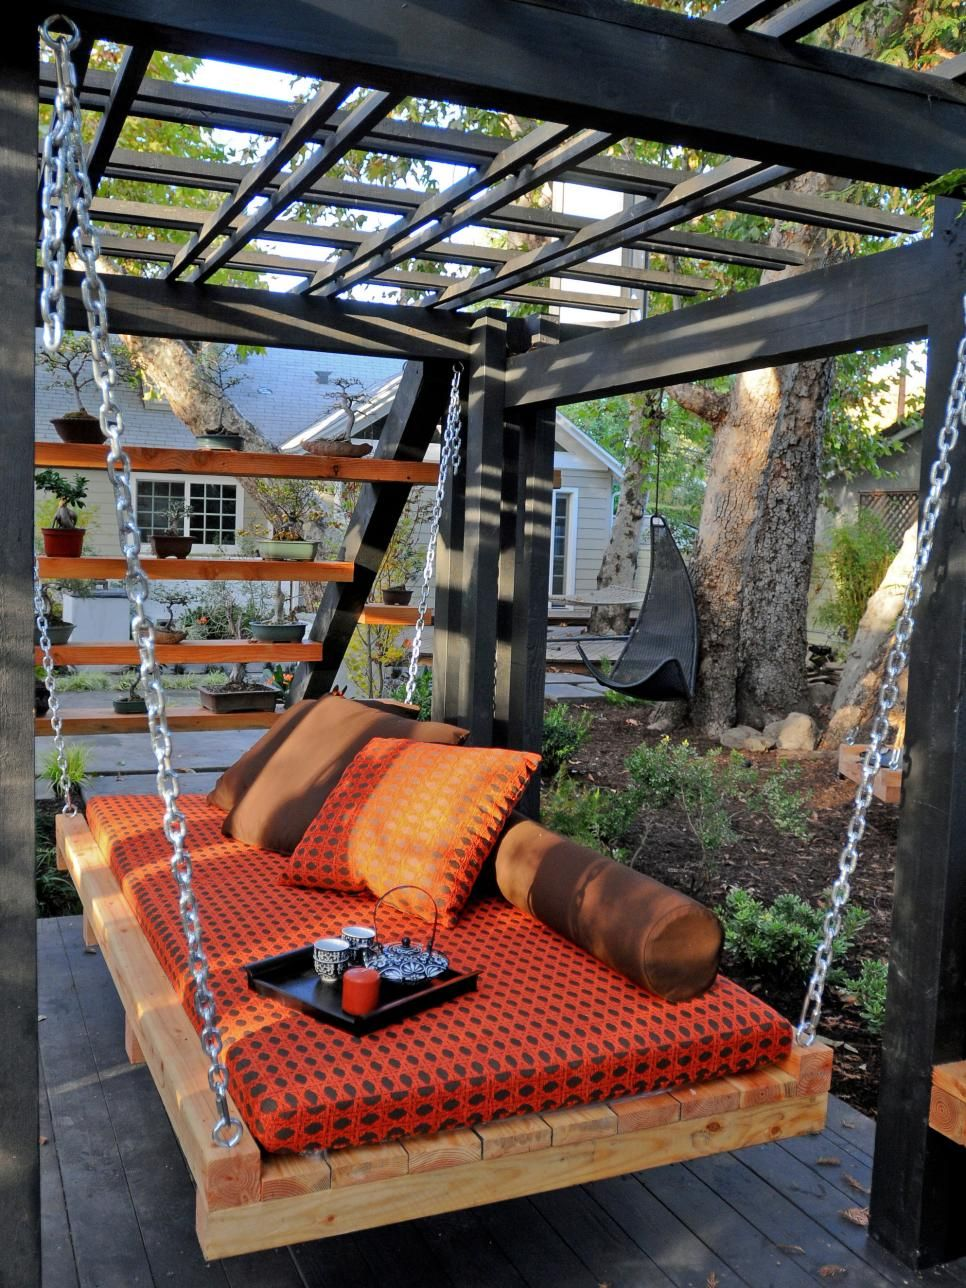 nap in the sun  or the shade  with our best ideas for hammocks outdoor lounging spaces  daybeds hammocks canopies and more      rh   pinterest